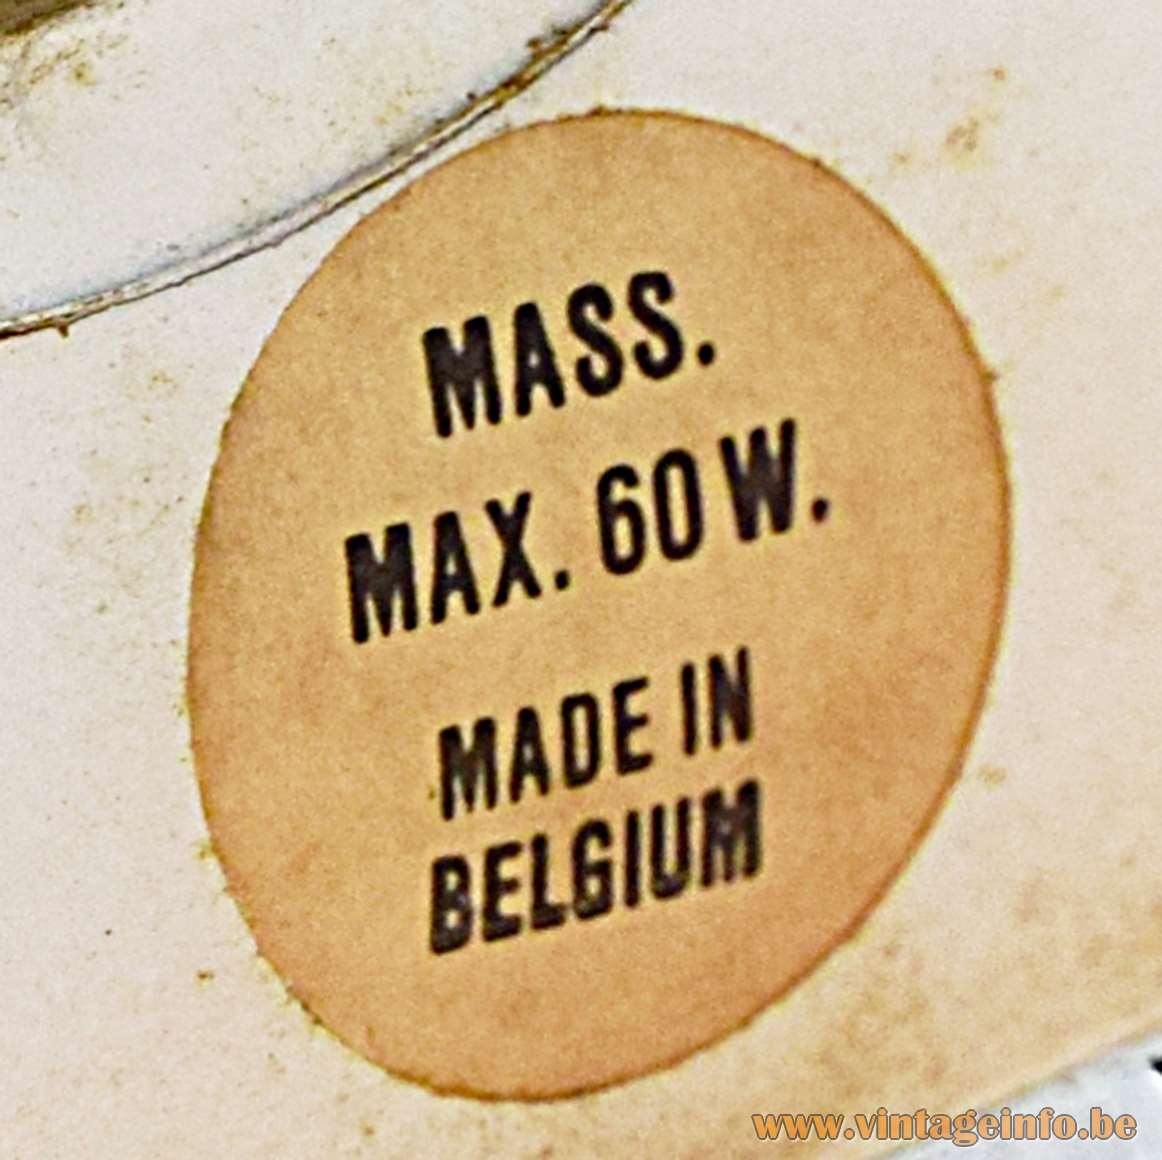 Massive Belgium - 1970s Label - Mass. Max. 60W. Made in Belgium (Massimo - Maximum 60 Watt)